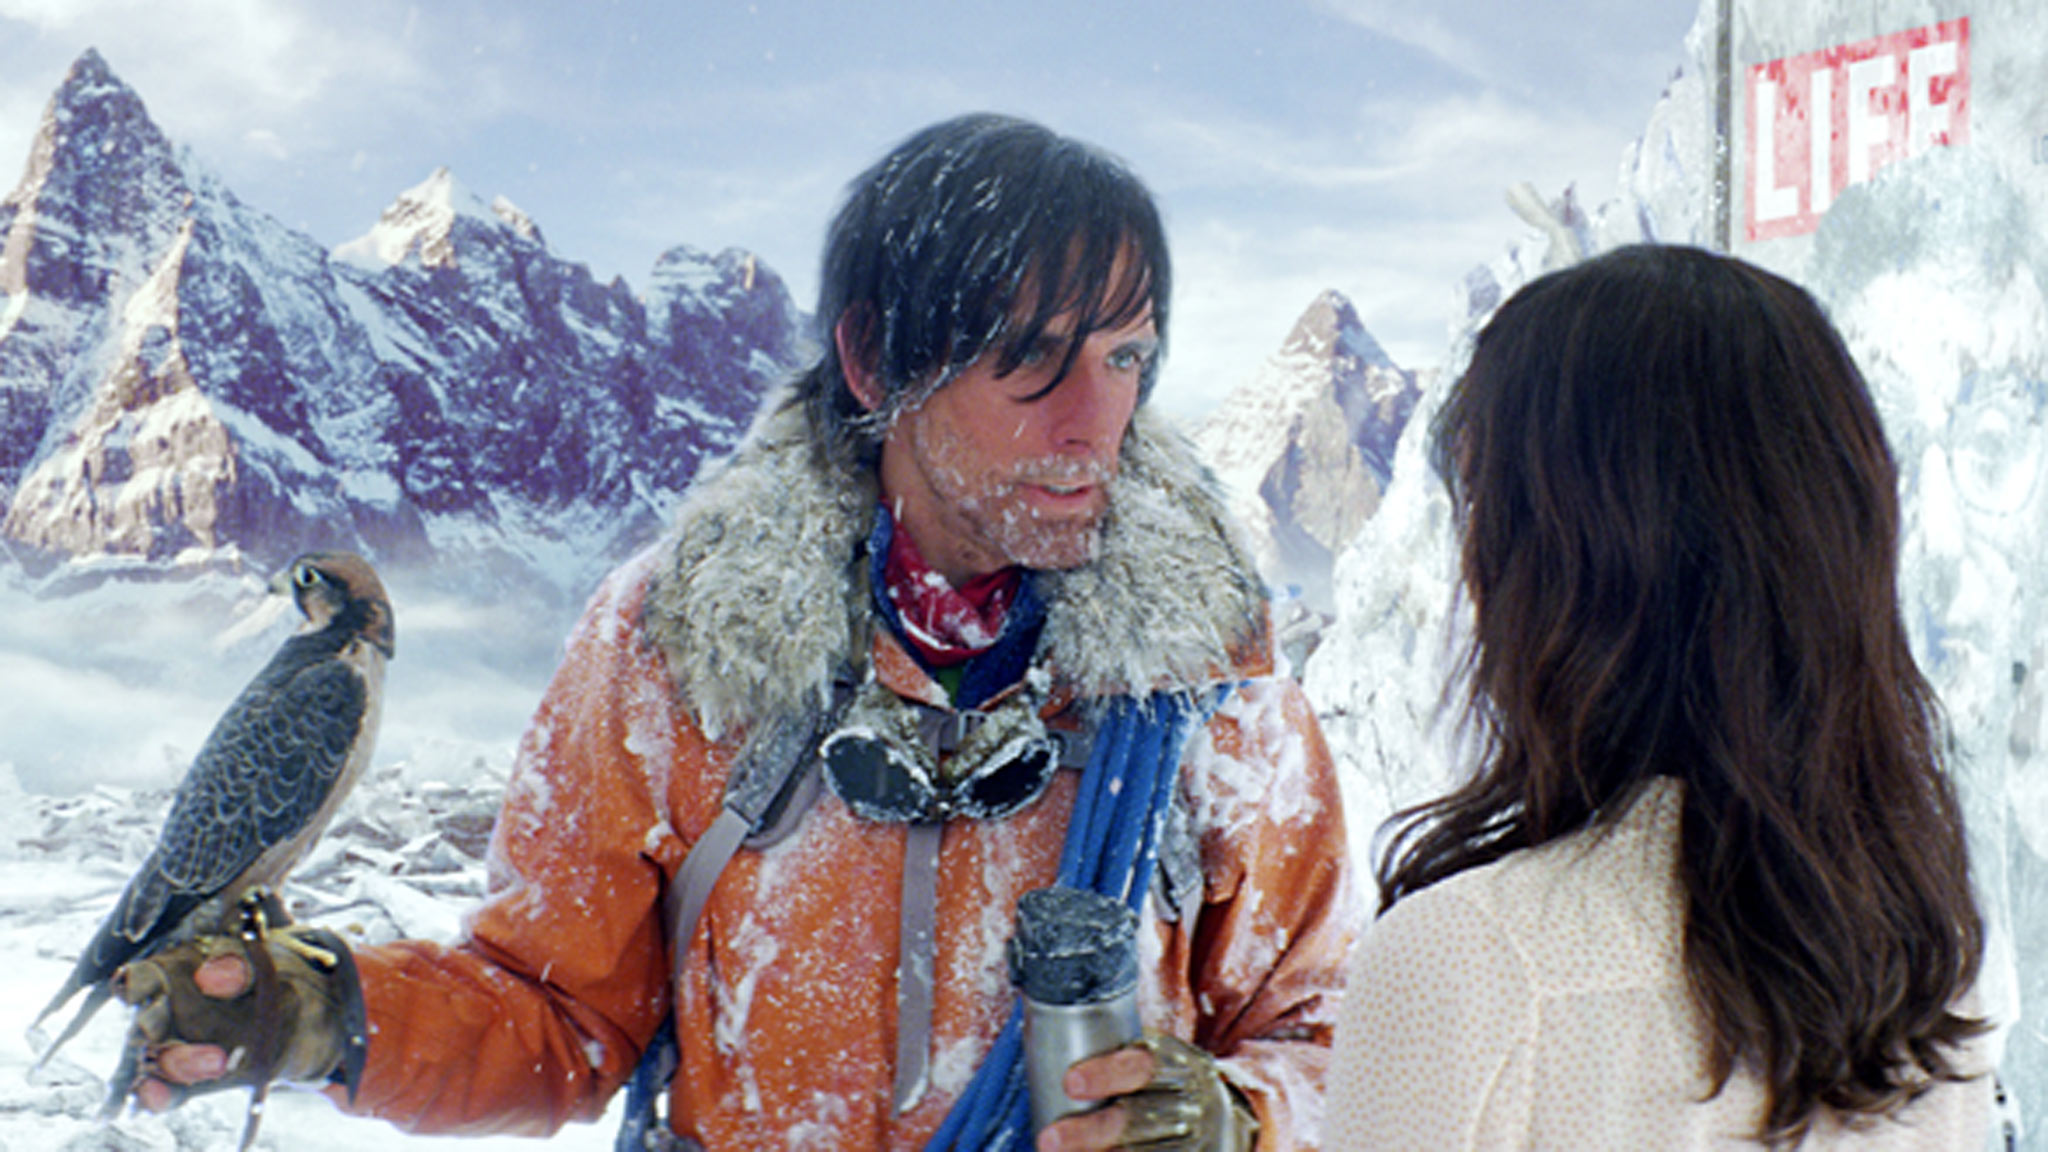 15 Best Travel Movies To Inspire A Bucket List; The Secret Life of Walter Mitty